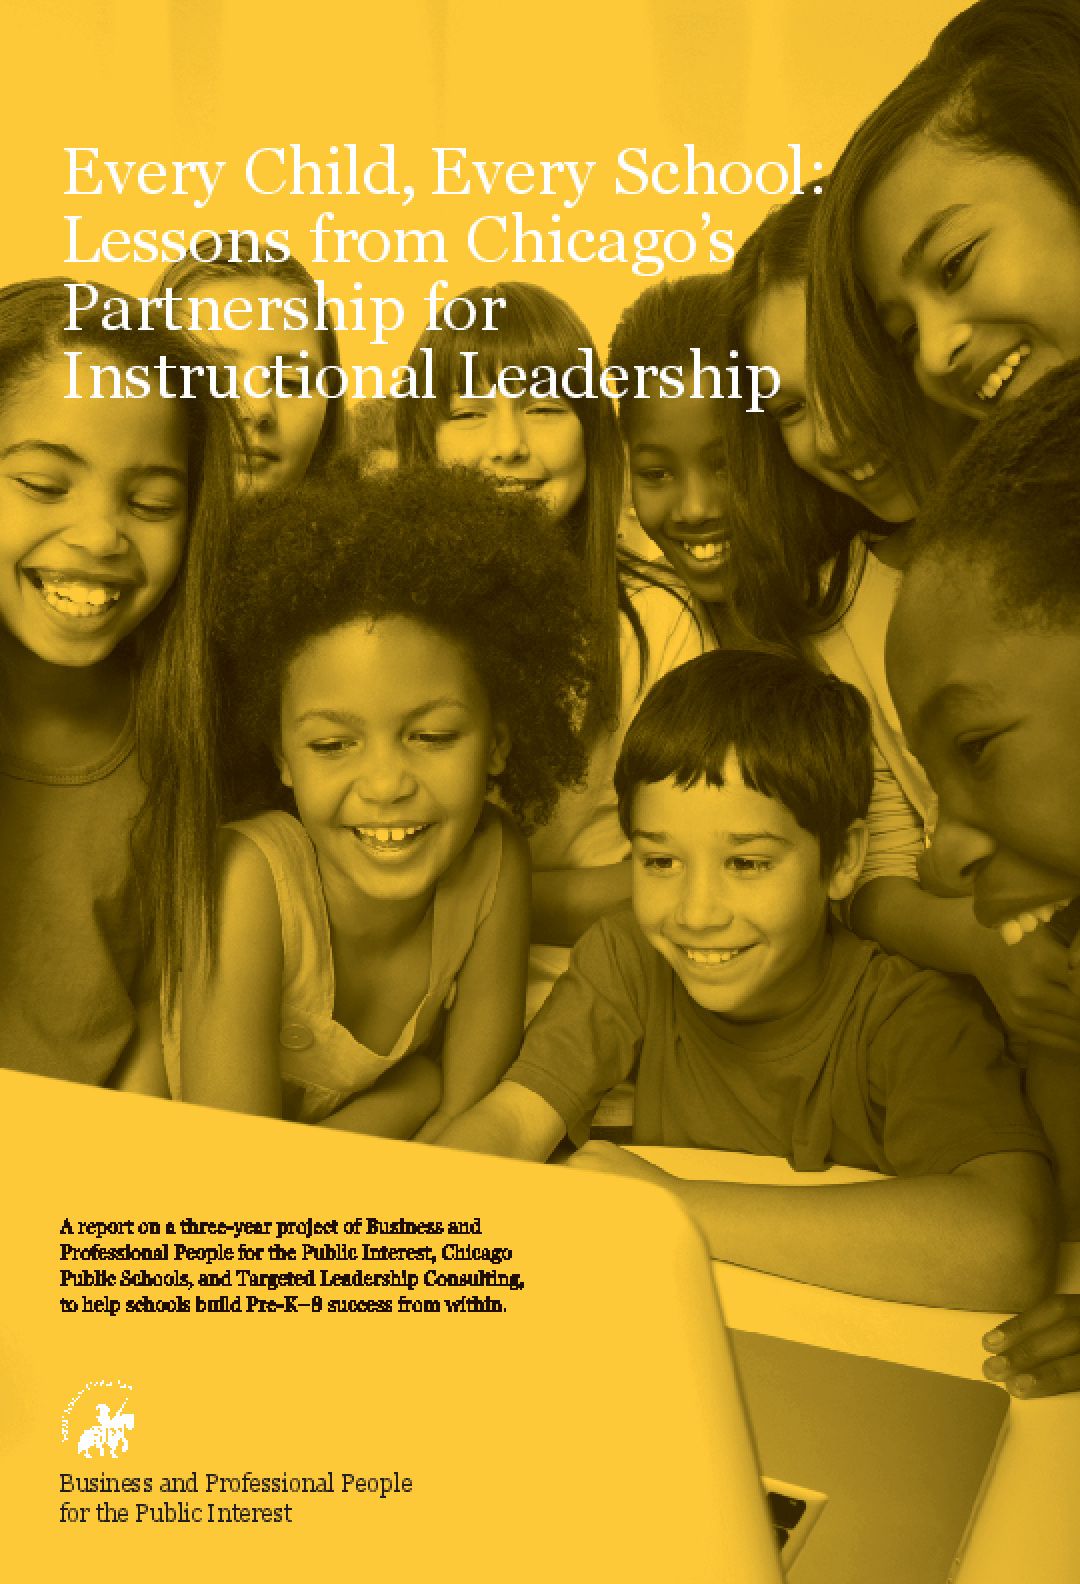 Every Child, Every School: Lessons from Chicago's Partnership for Instructional Leadership